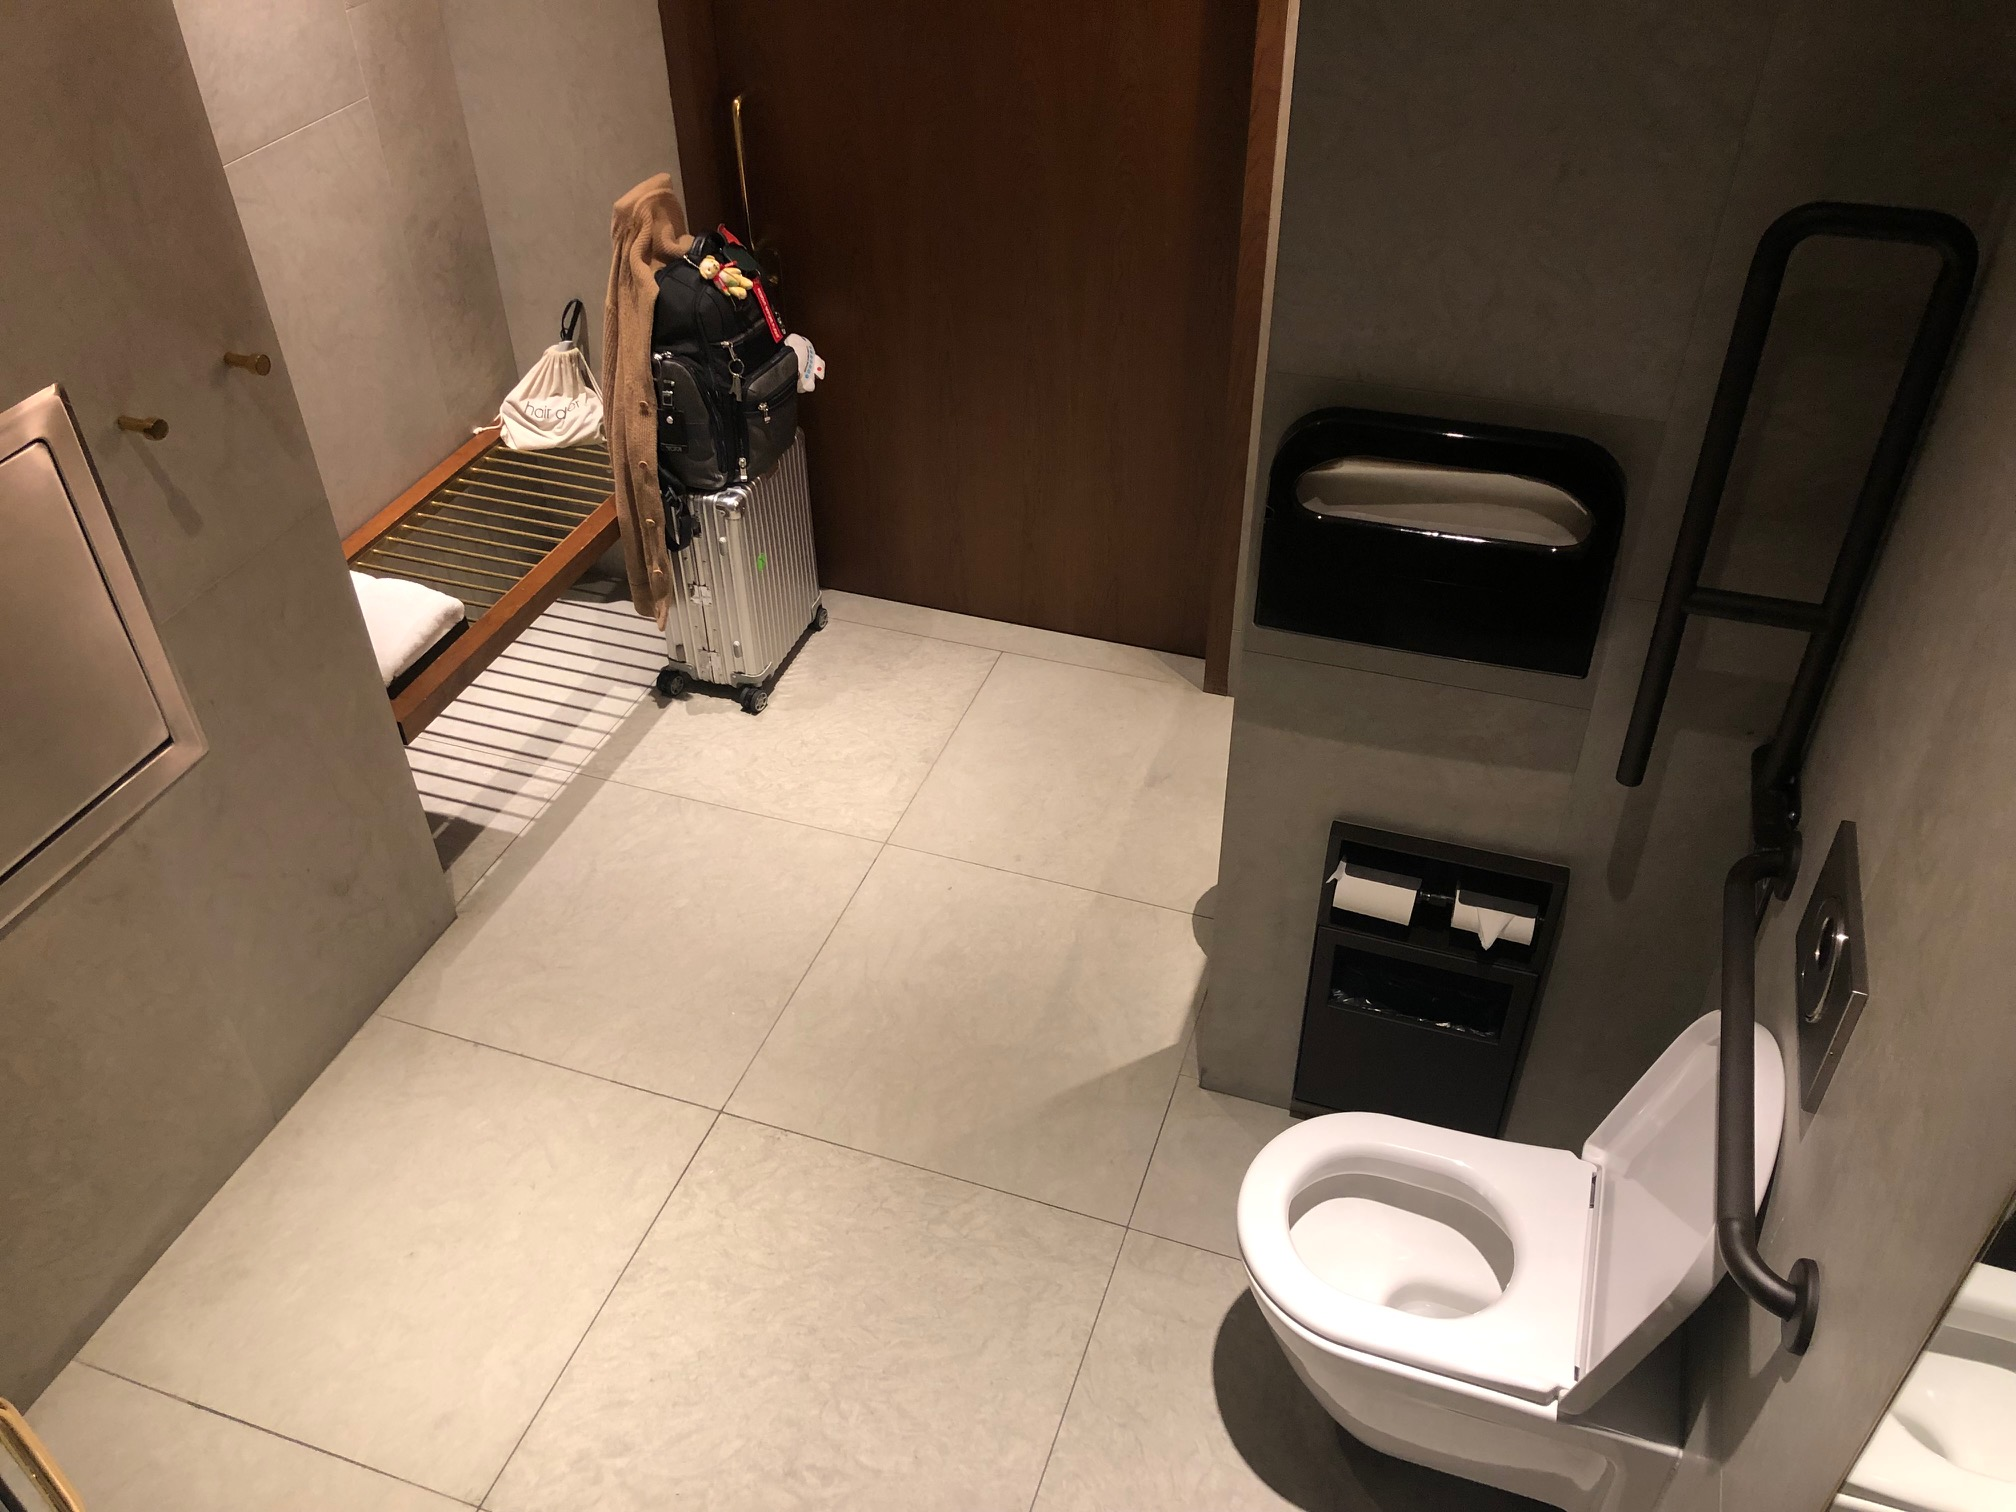 Cathay Pacific Lounge - Shower Room